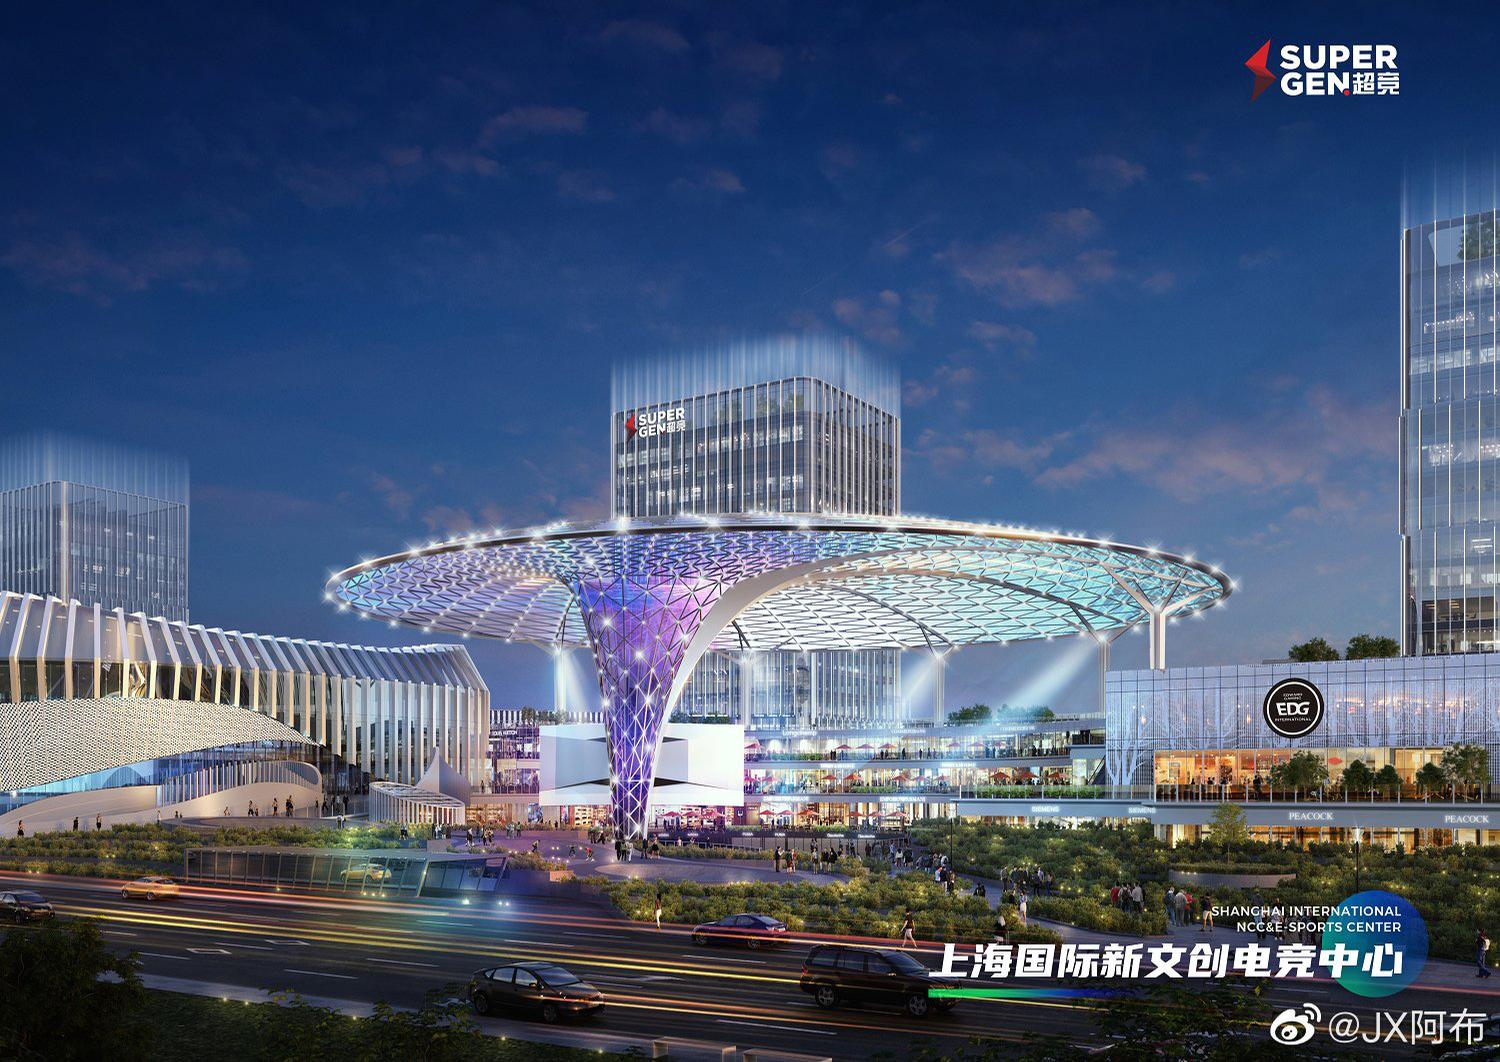 Work starts on US$898m e-sports arena in Shanghai